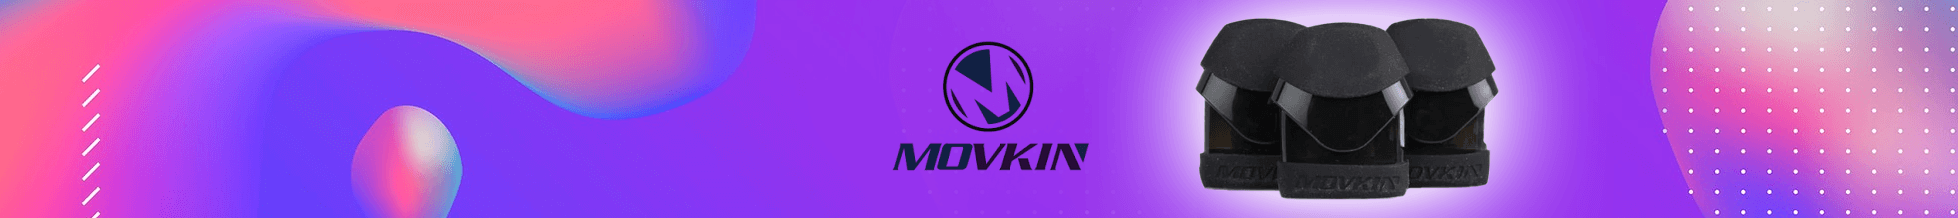 movkin-category-banner.png